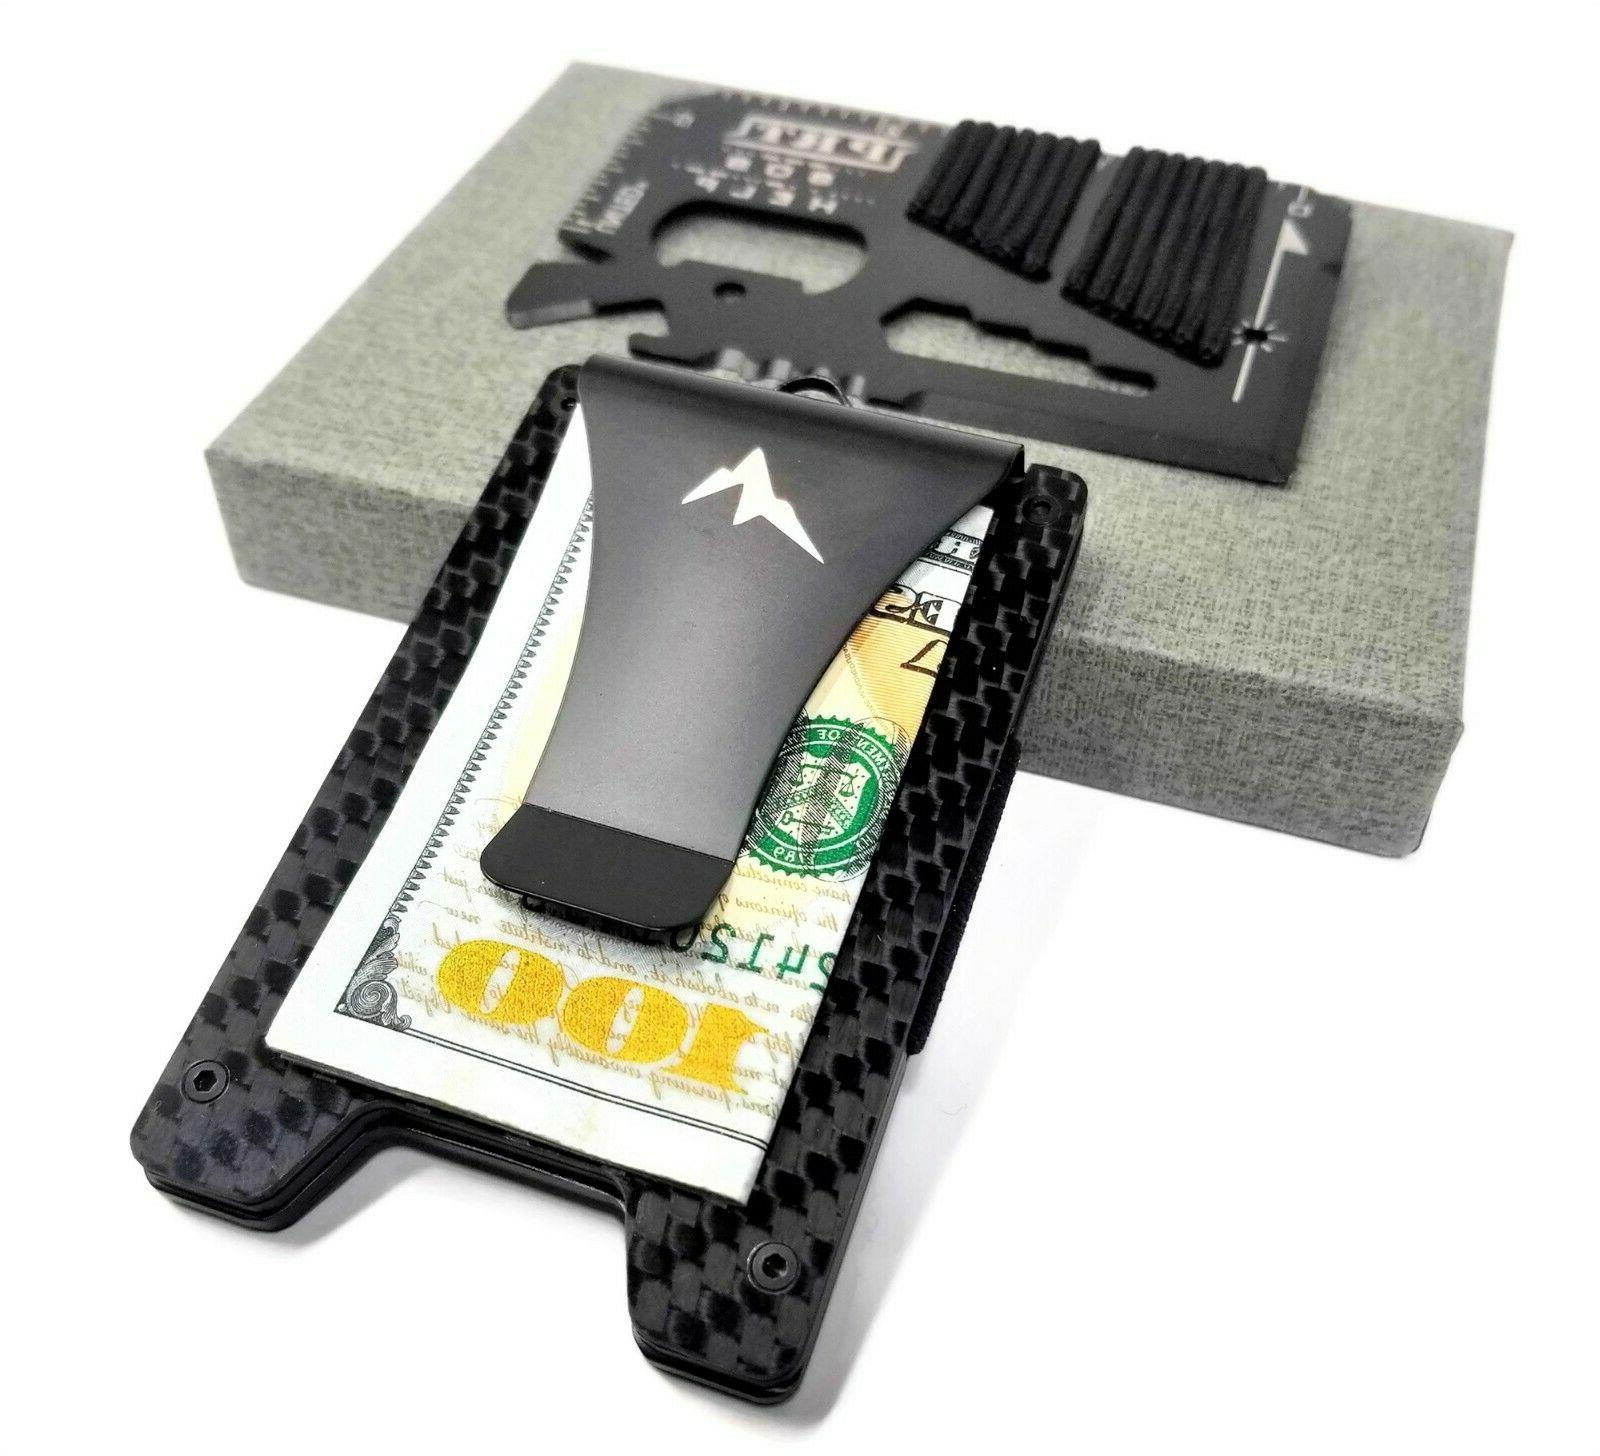 edc tactical wallet and credit card multitool